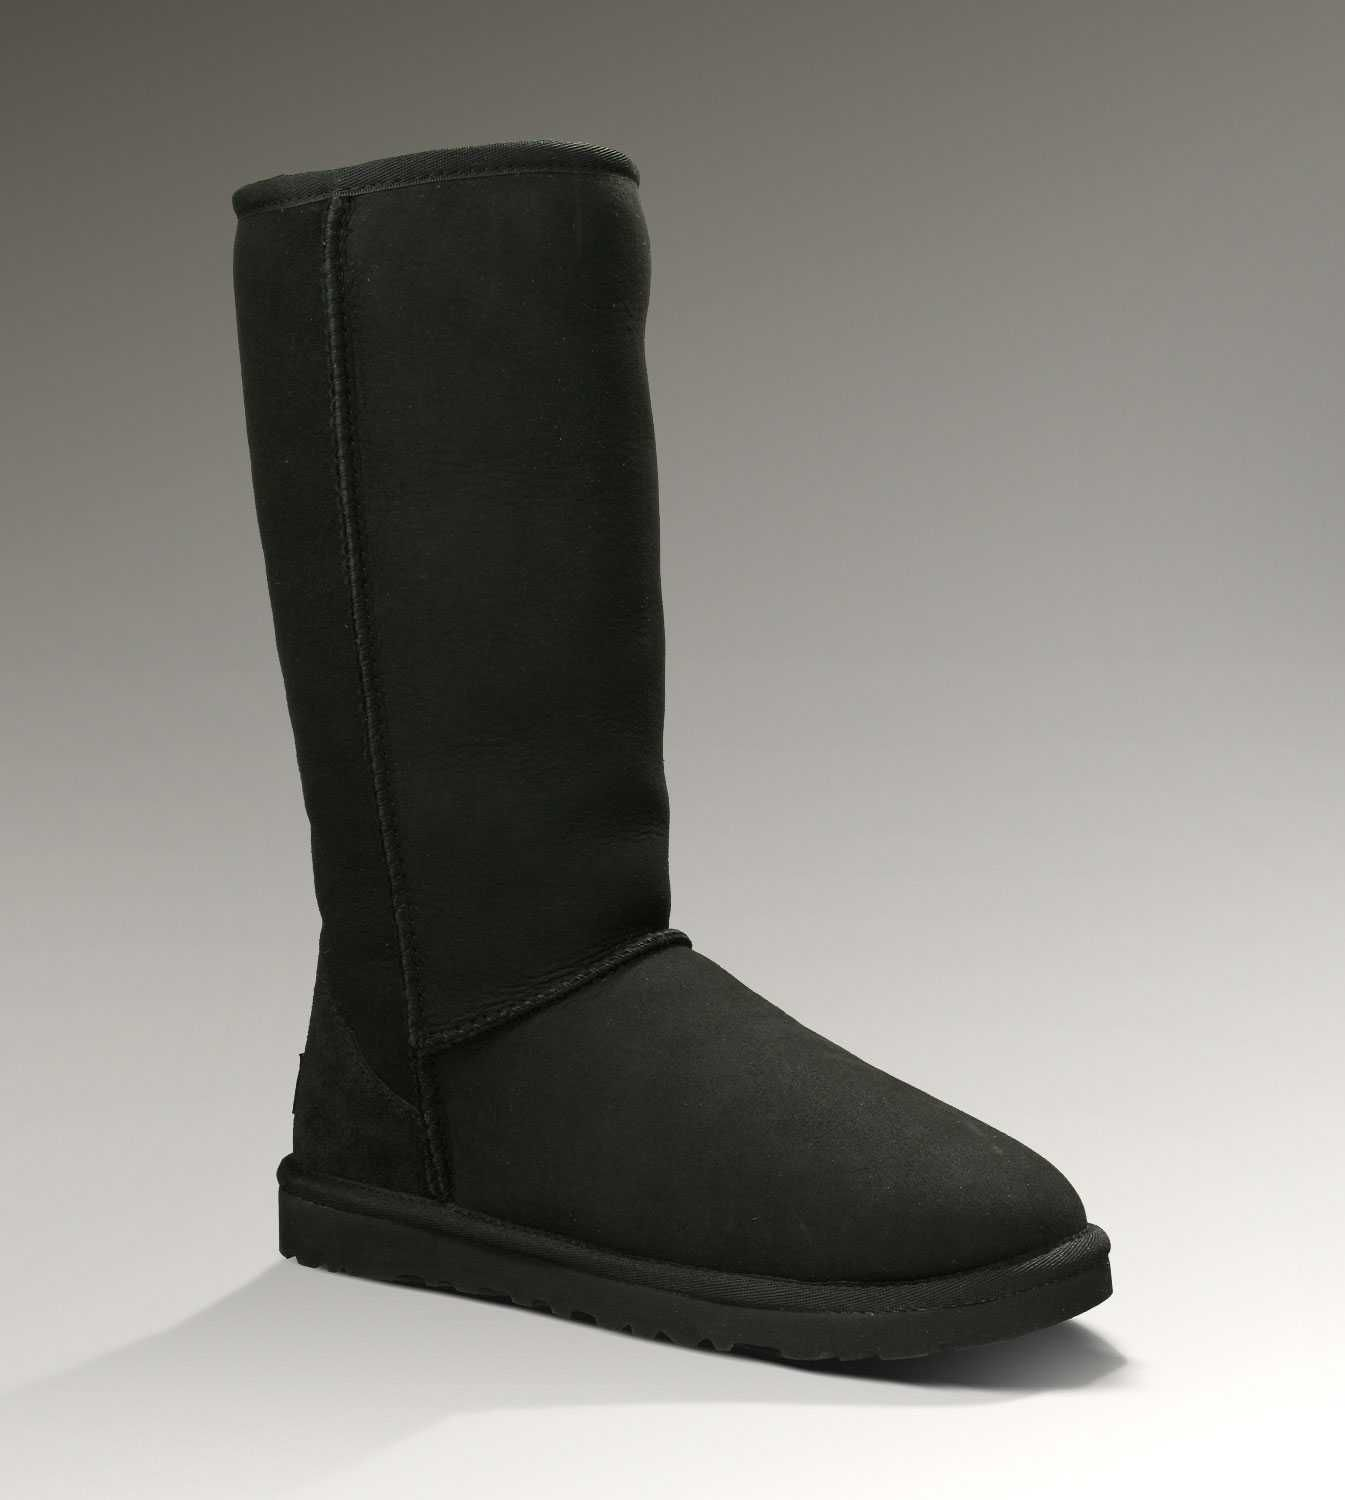 uggs classic tall black size 6